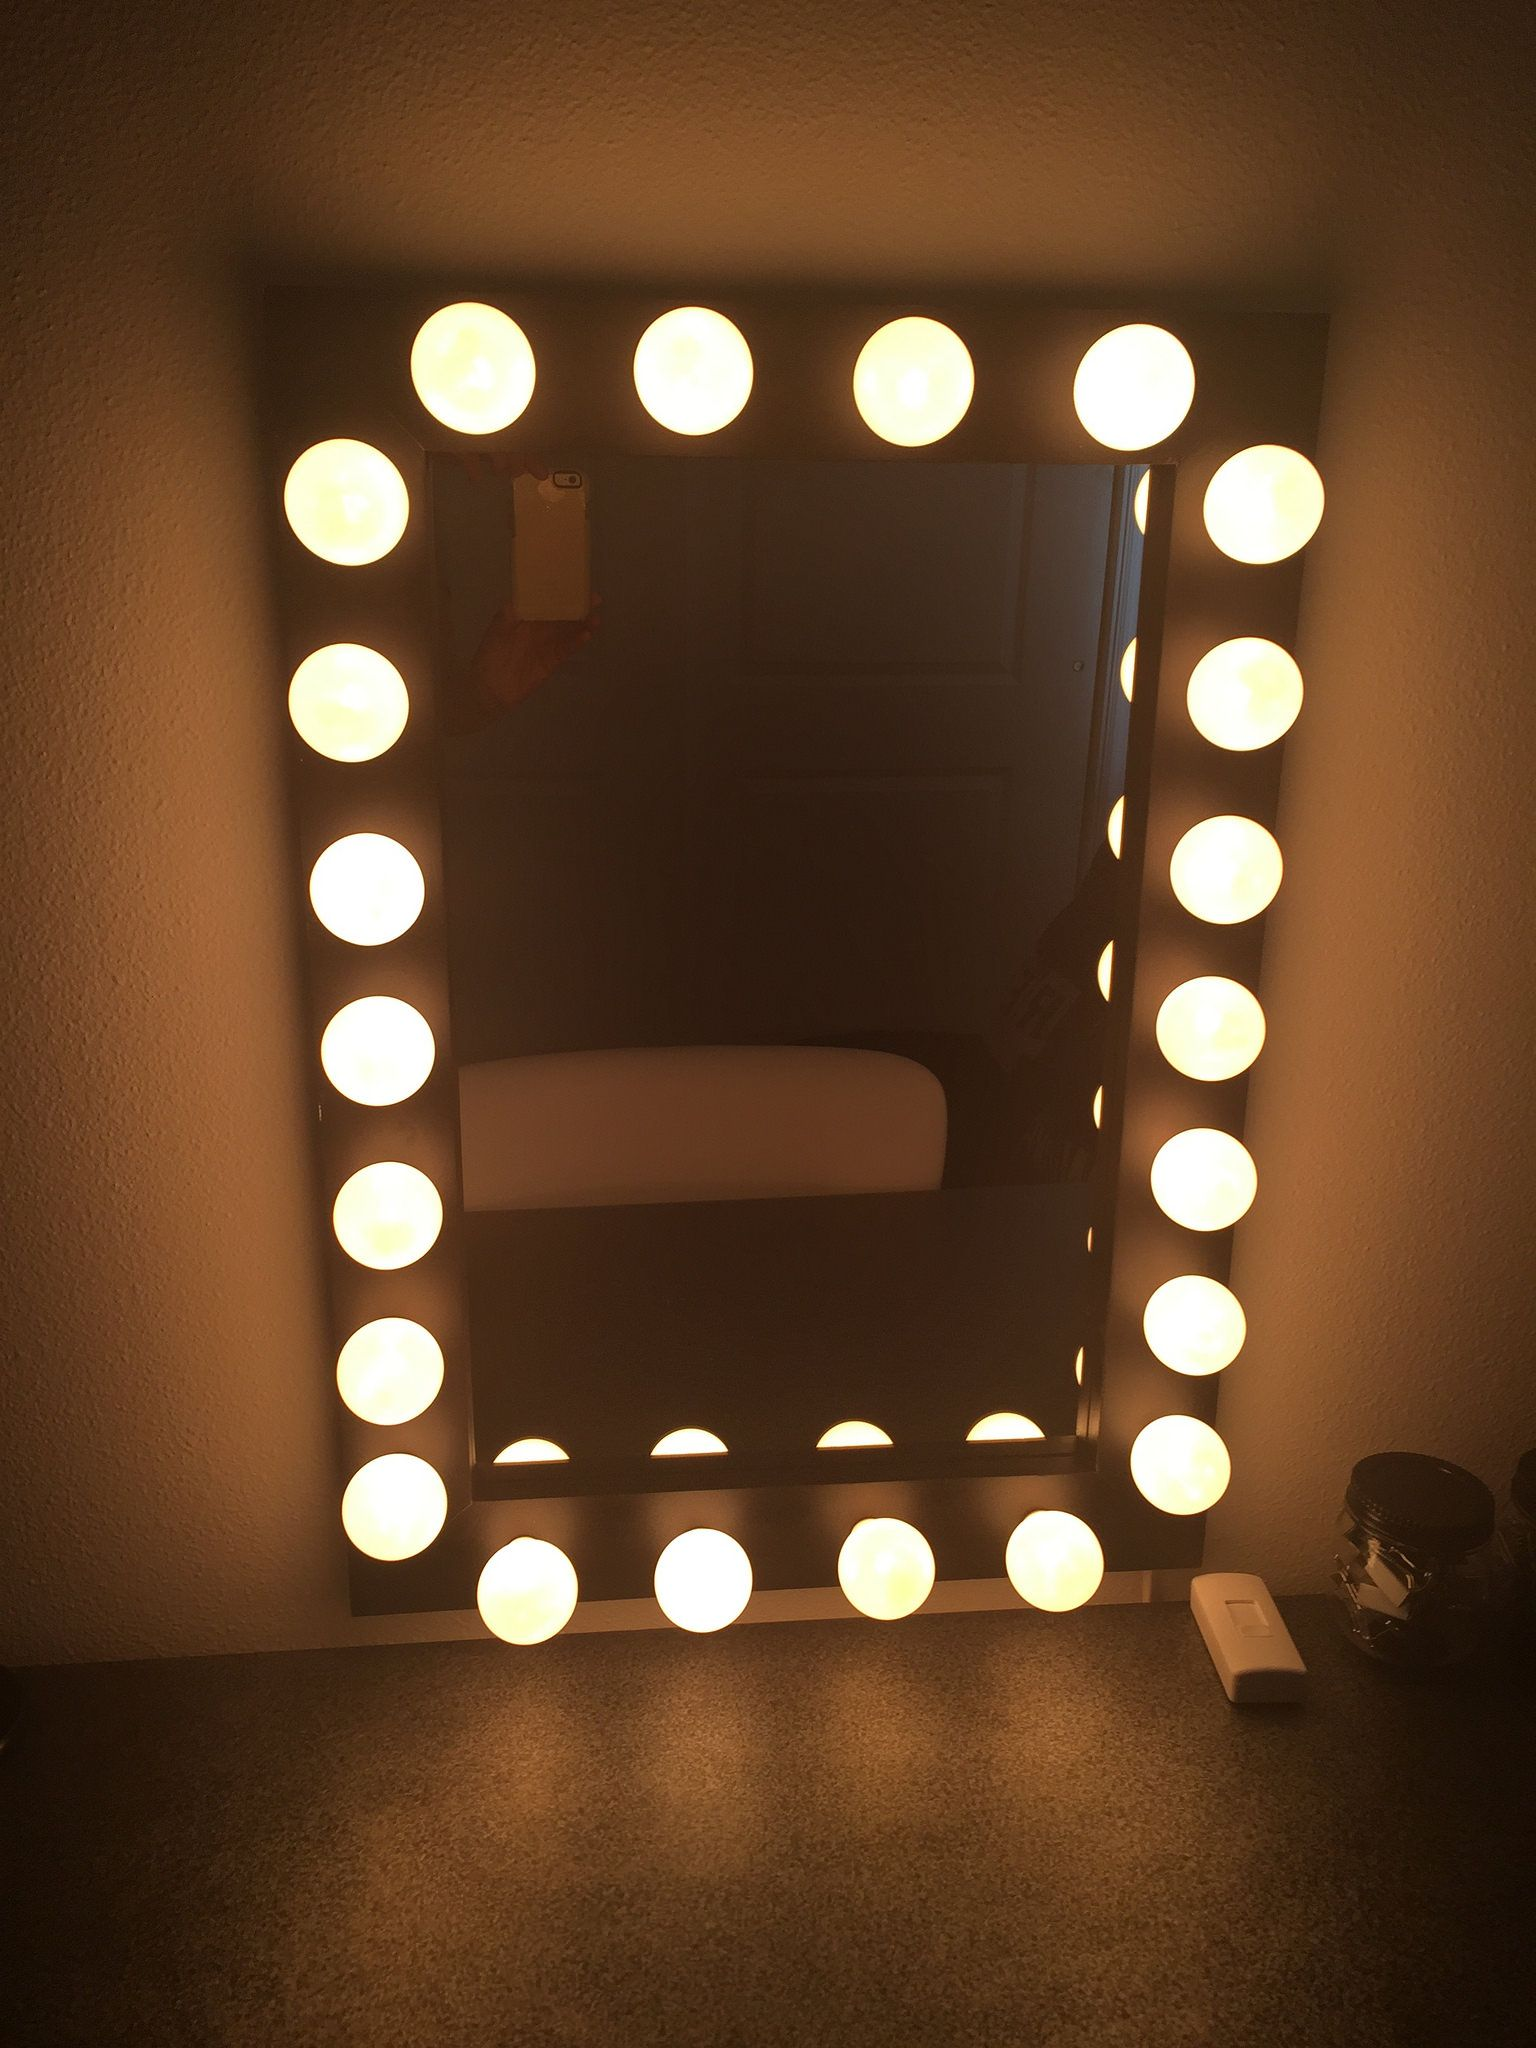 Bulb Lighted Vanity Mirror Perfect For Makeup AWESOME HOUSE LIGHTING ...